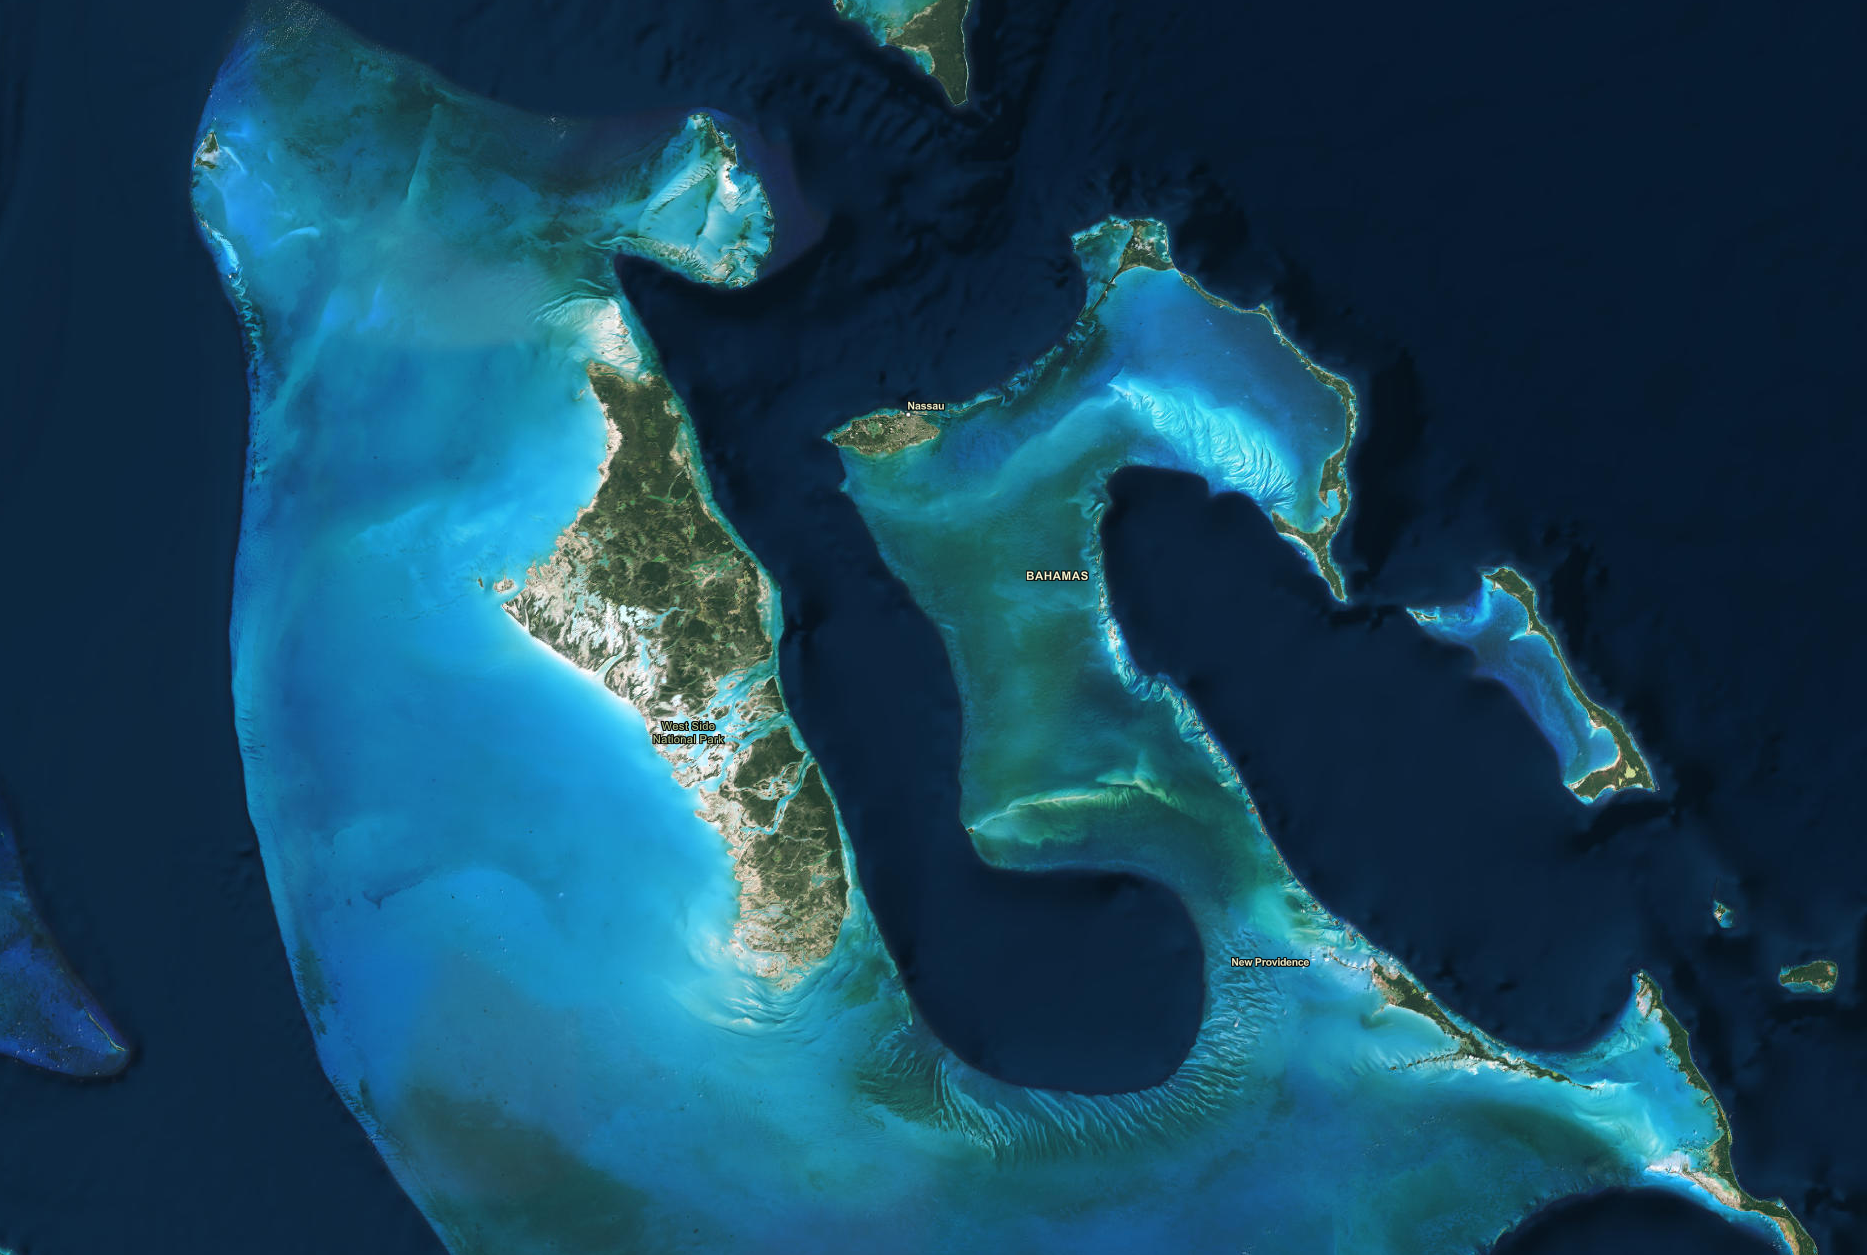 The Bahamas from the ArcGIS Imagery Hybrid